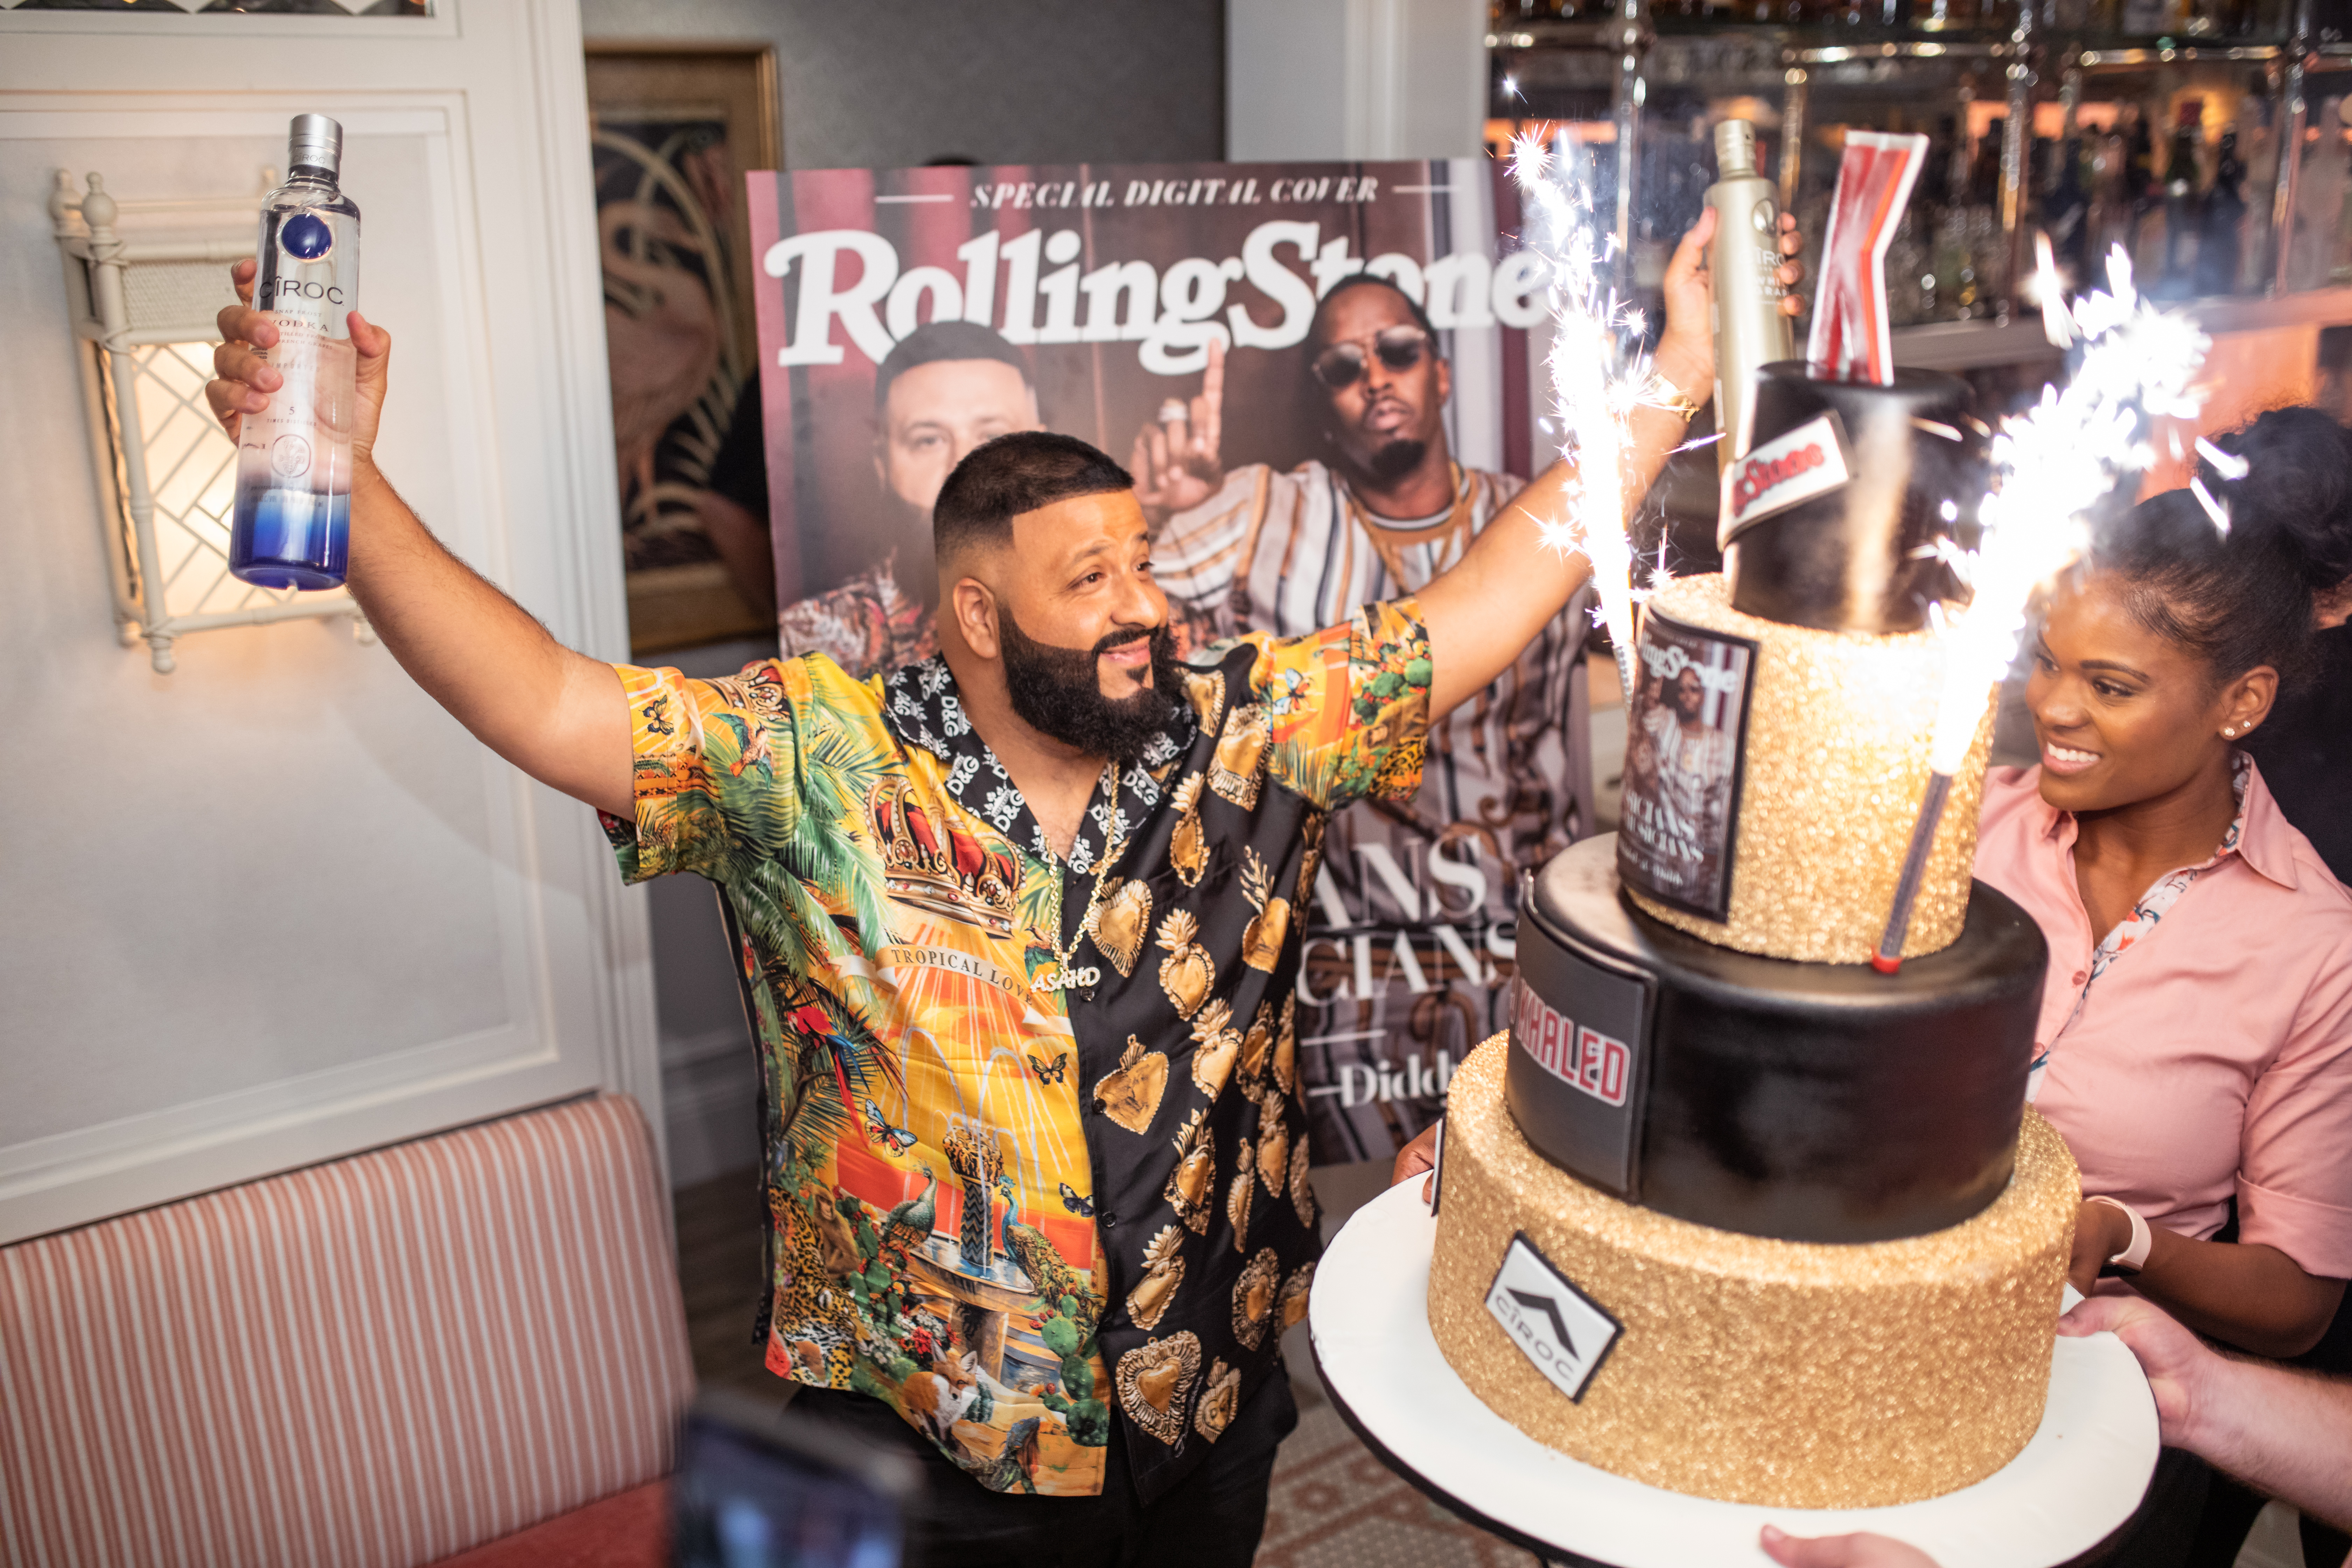 Diddy and DJ Khaled Rolling Stone cover celebration dinner